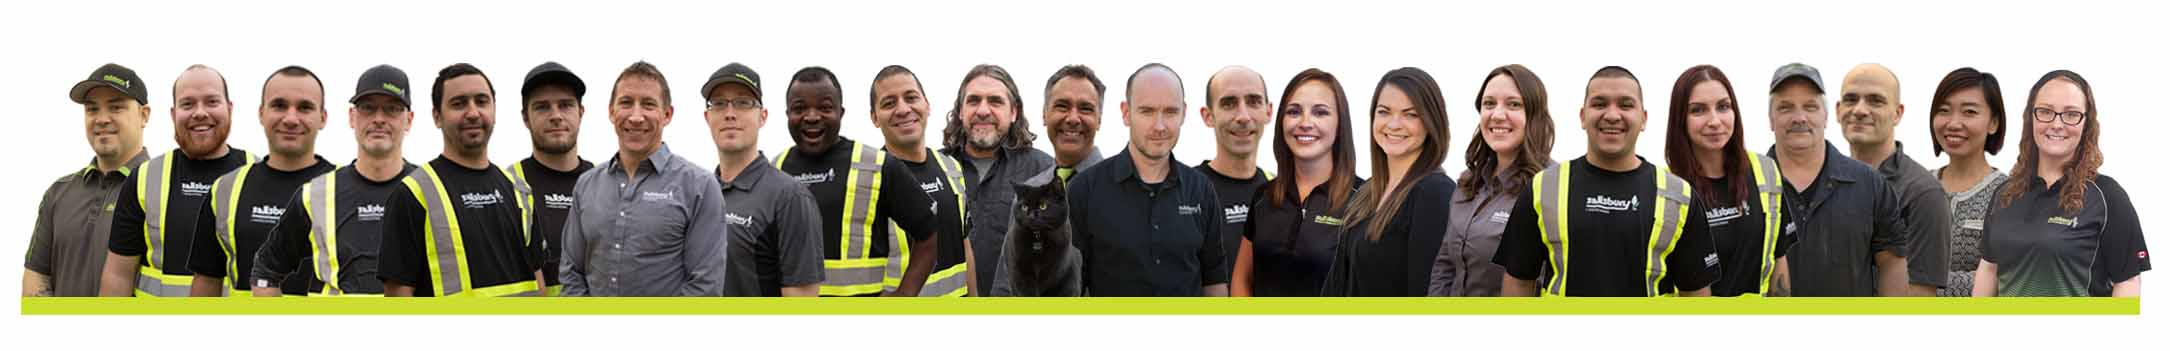 Group image of Salisbury Landscaping staff